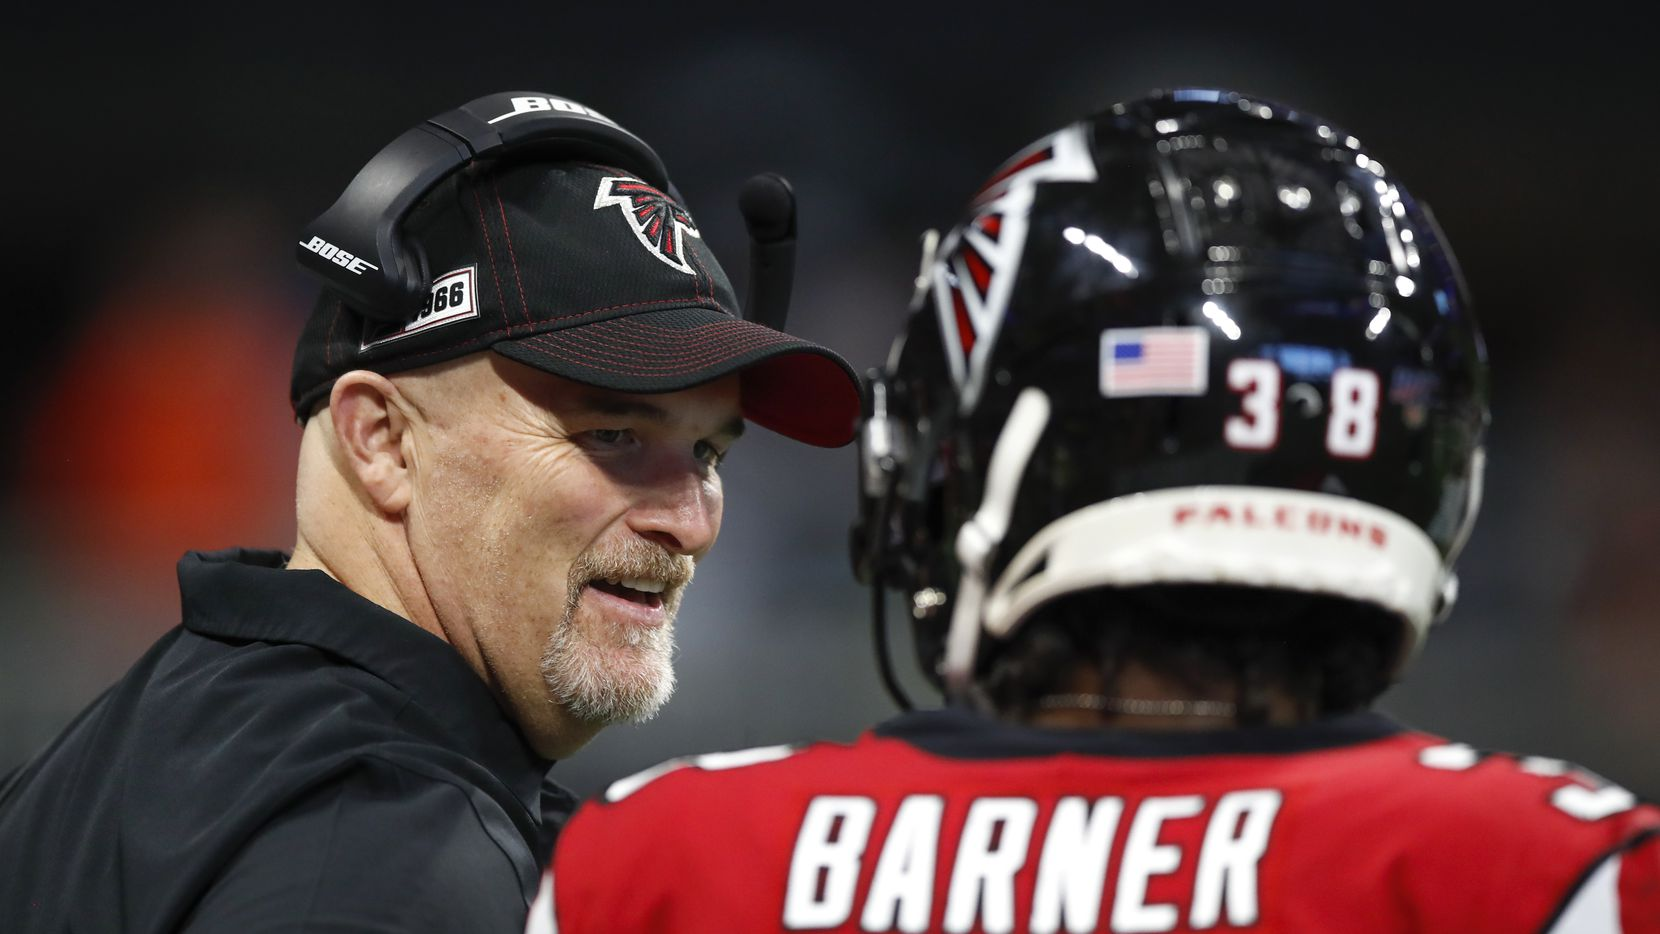 Head coach Dan Quinn of the Atlanta Falcons speaks with Kenjon Barner #38 in the second half on an NFL game against the Carolina Panthers at Mercedes-Benz Stadium on December 8, 2019 in Atlanta, Georgia